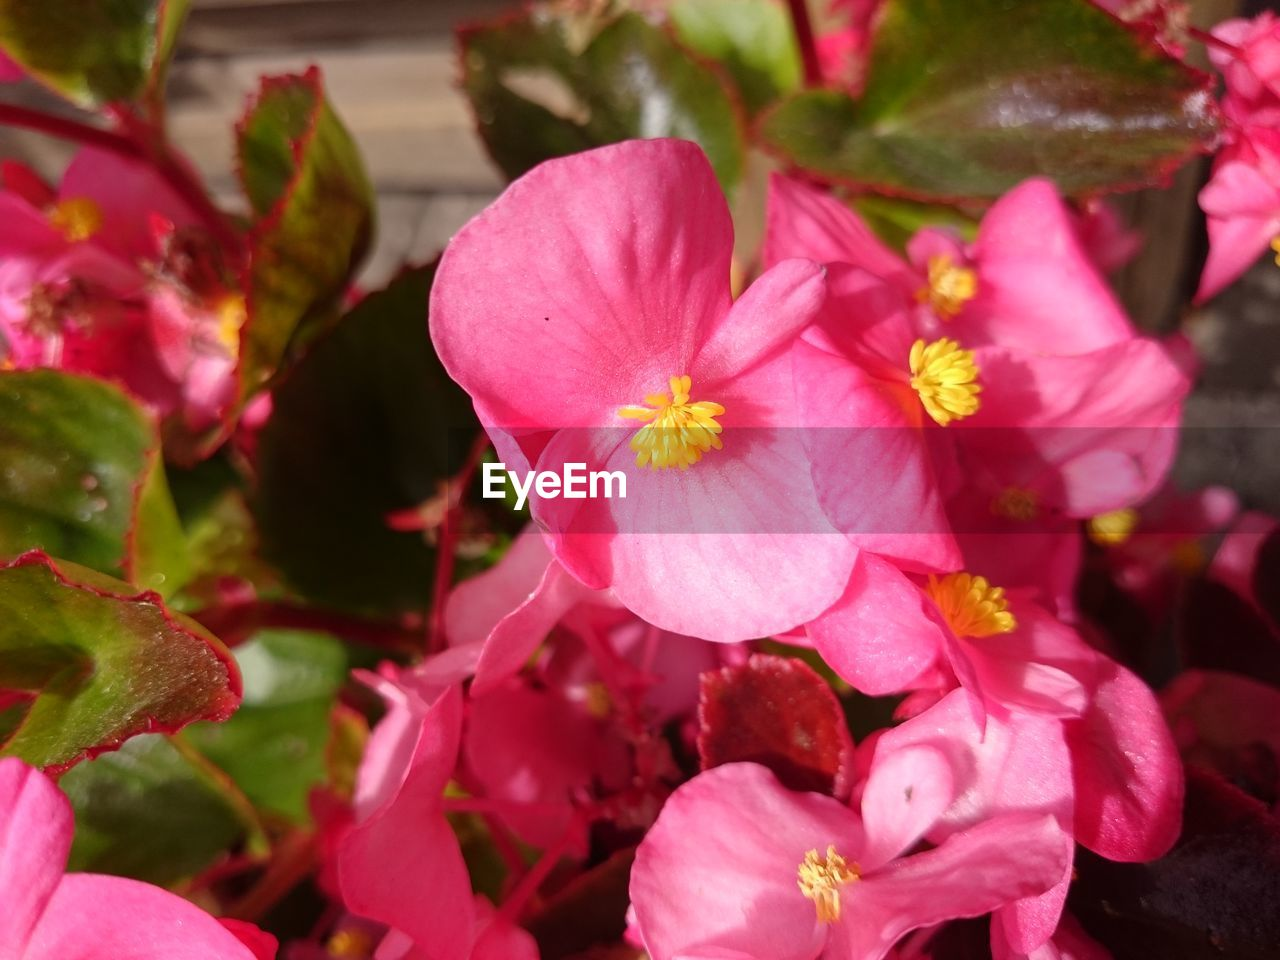 flower, petal, growth, flower head, fragility, pink color, beauty in nature, nature, no people, blooming, freshness, plant, outdoors, close-up, day, periwinkle